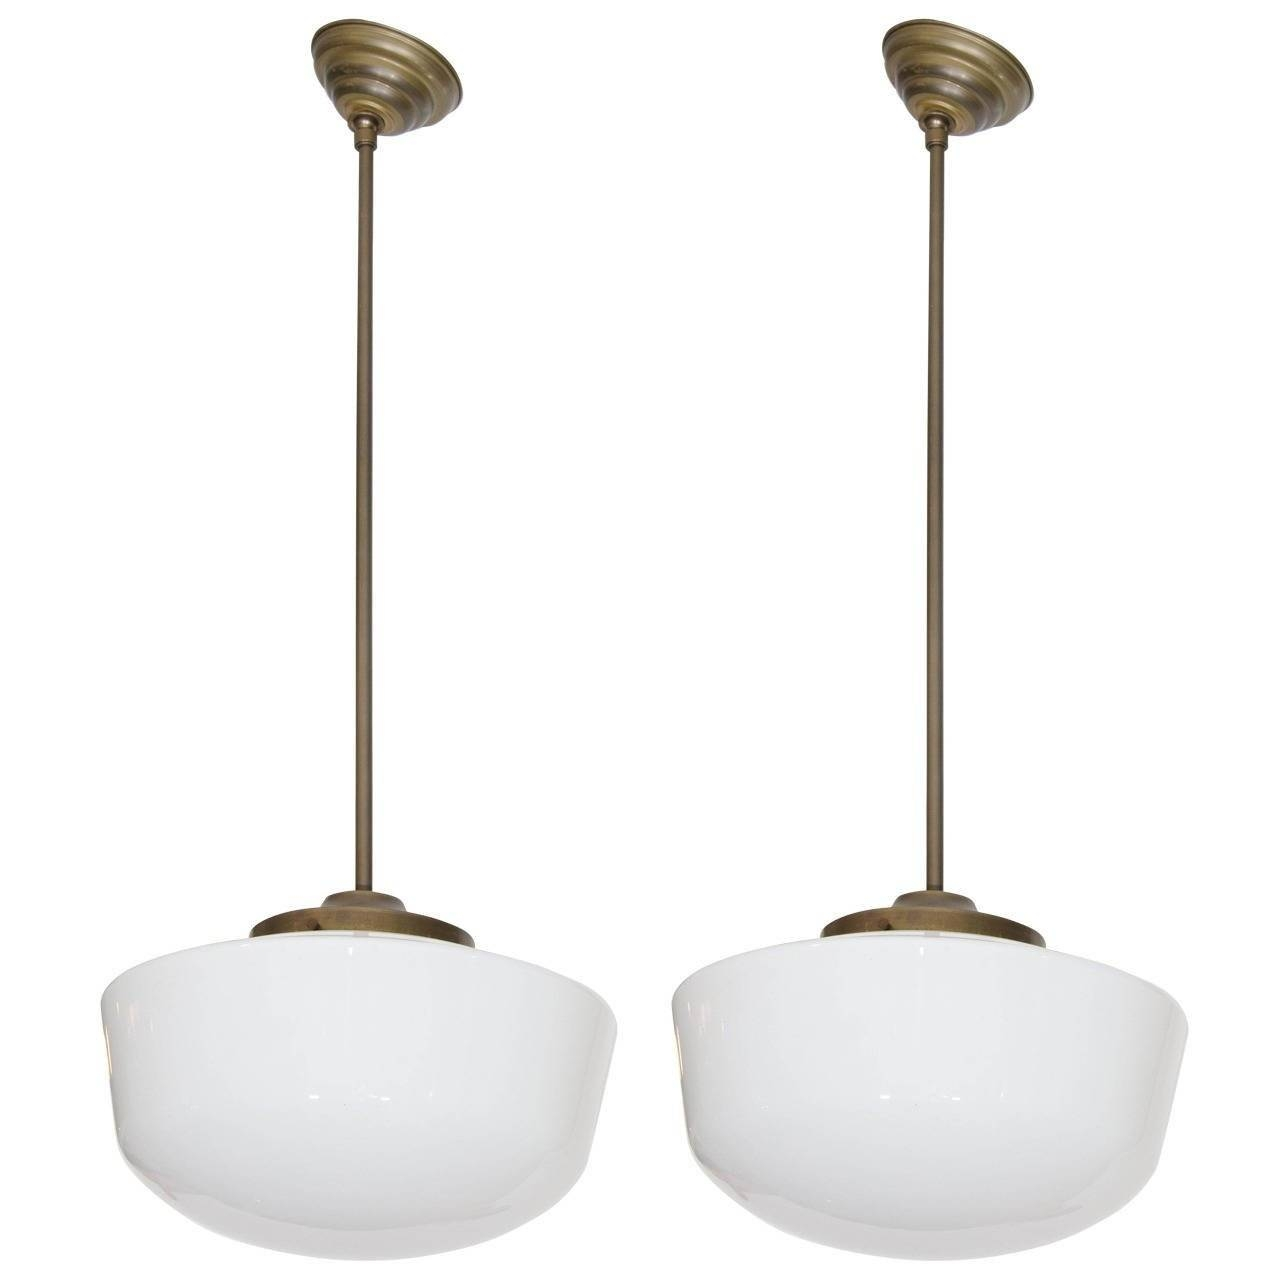 Pair Of Vintage Schoolhouse Milk Glass And Brass Pendant Lights pertaining to Milk Glass Pendant Light Fixtures (Image 10 of 15)